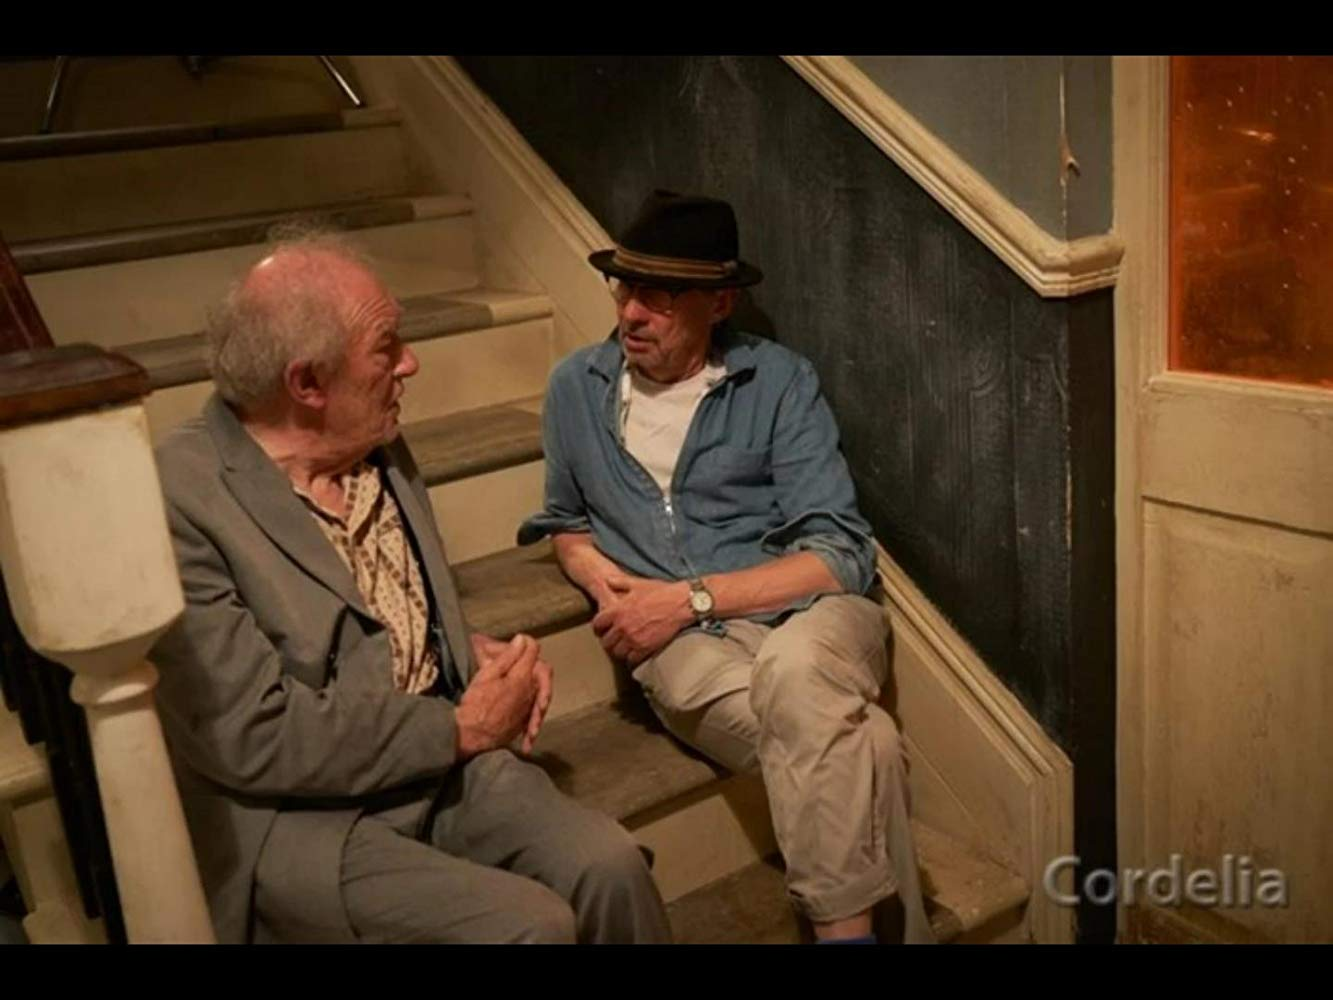 """Sir Michael Gambon chats with Adrian Shergold on the set of """"Cordelia""""."""